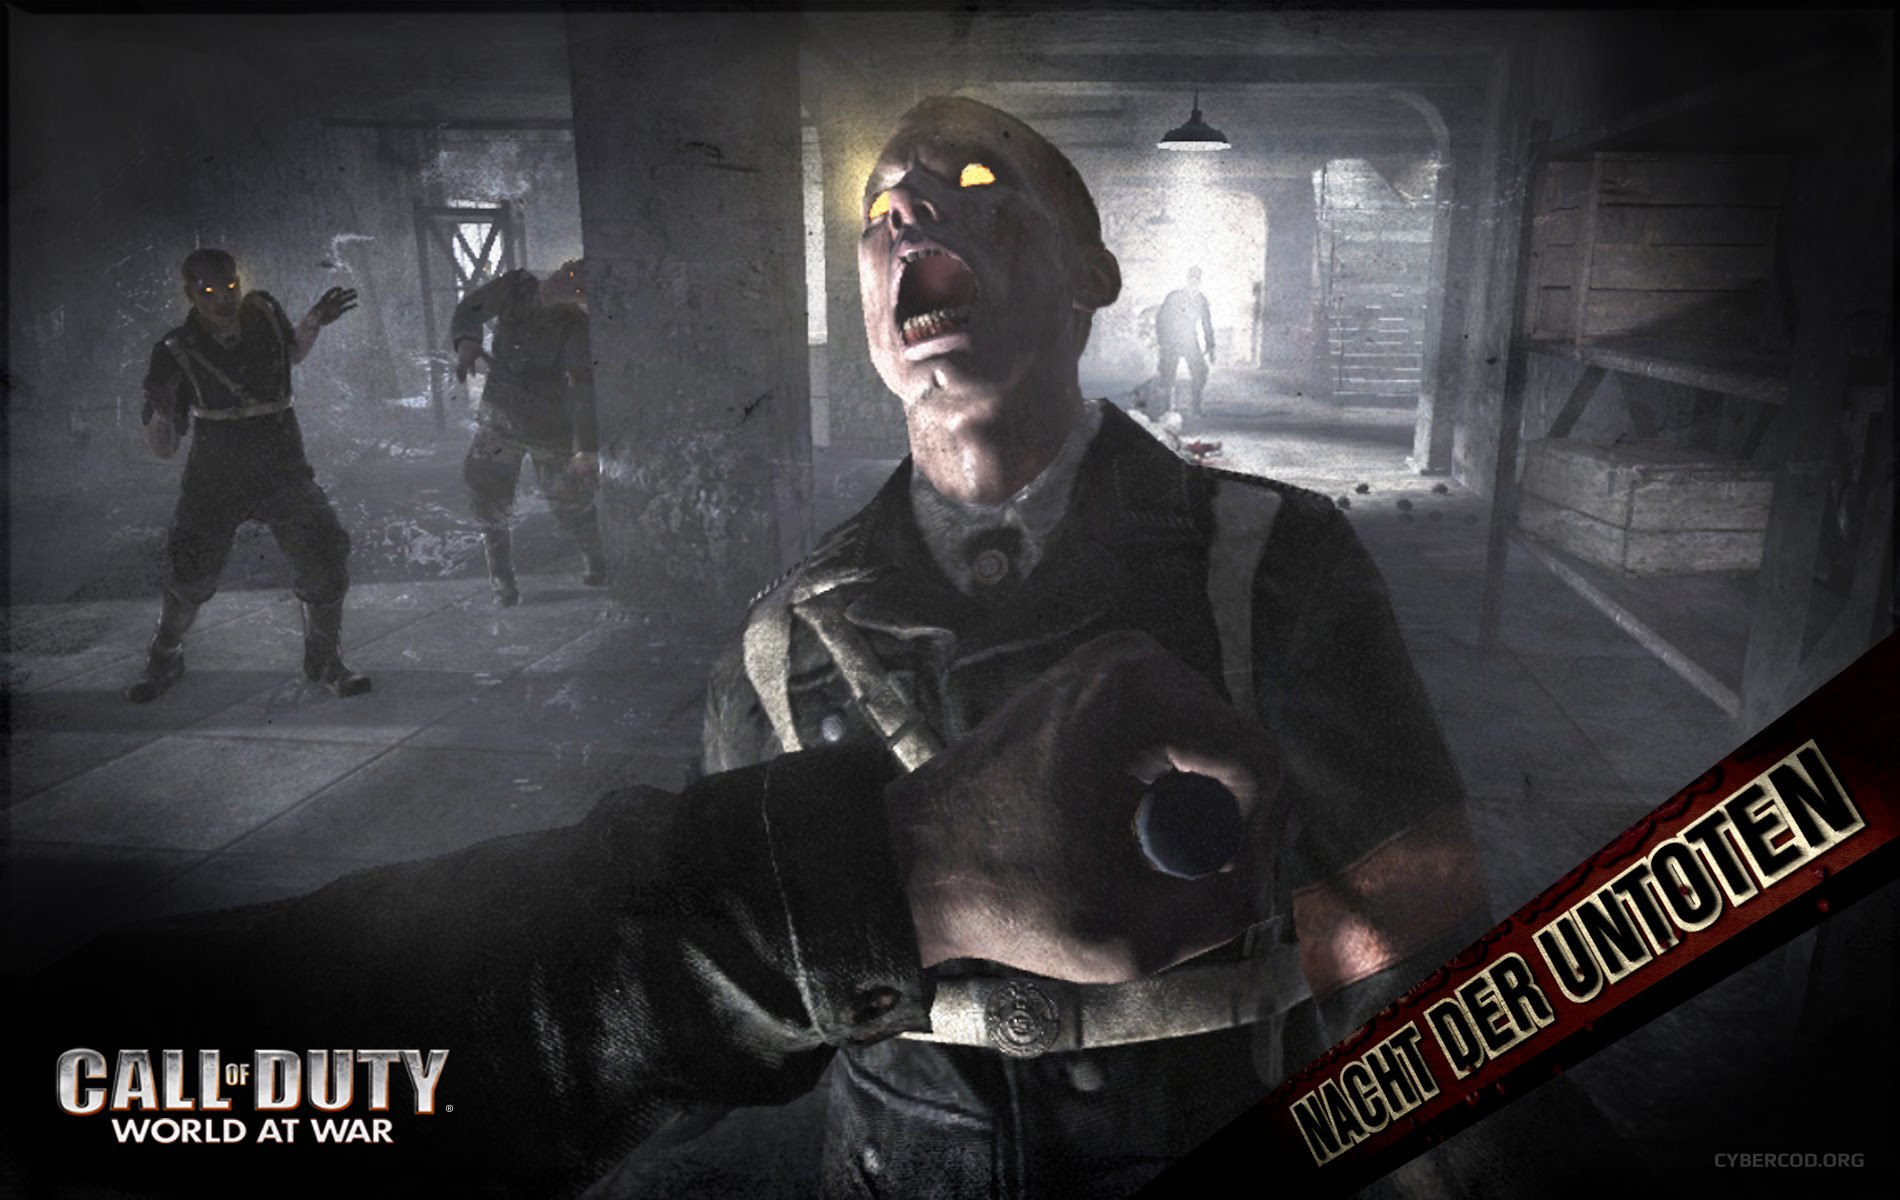 Nacht Der Untoten - Call of Duty: World at War